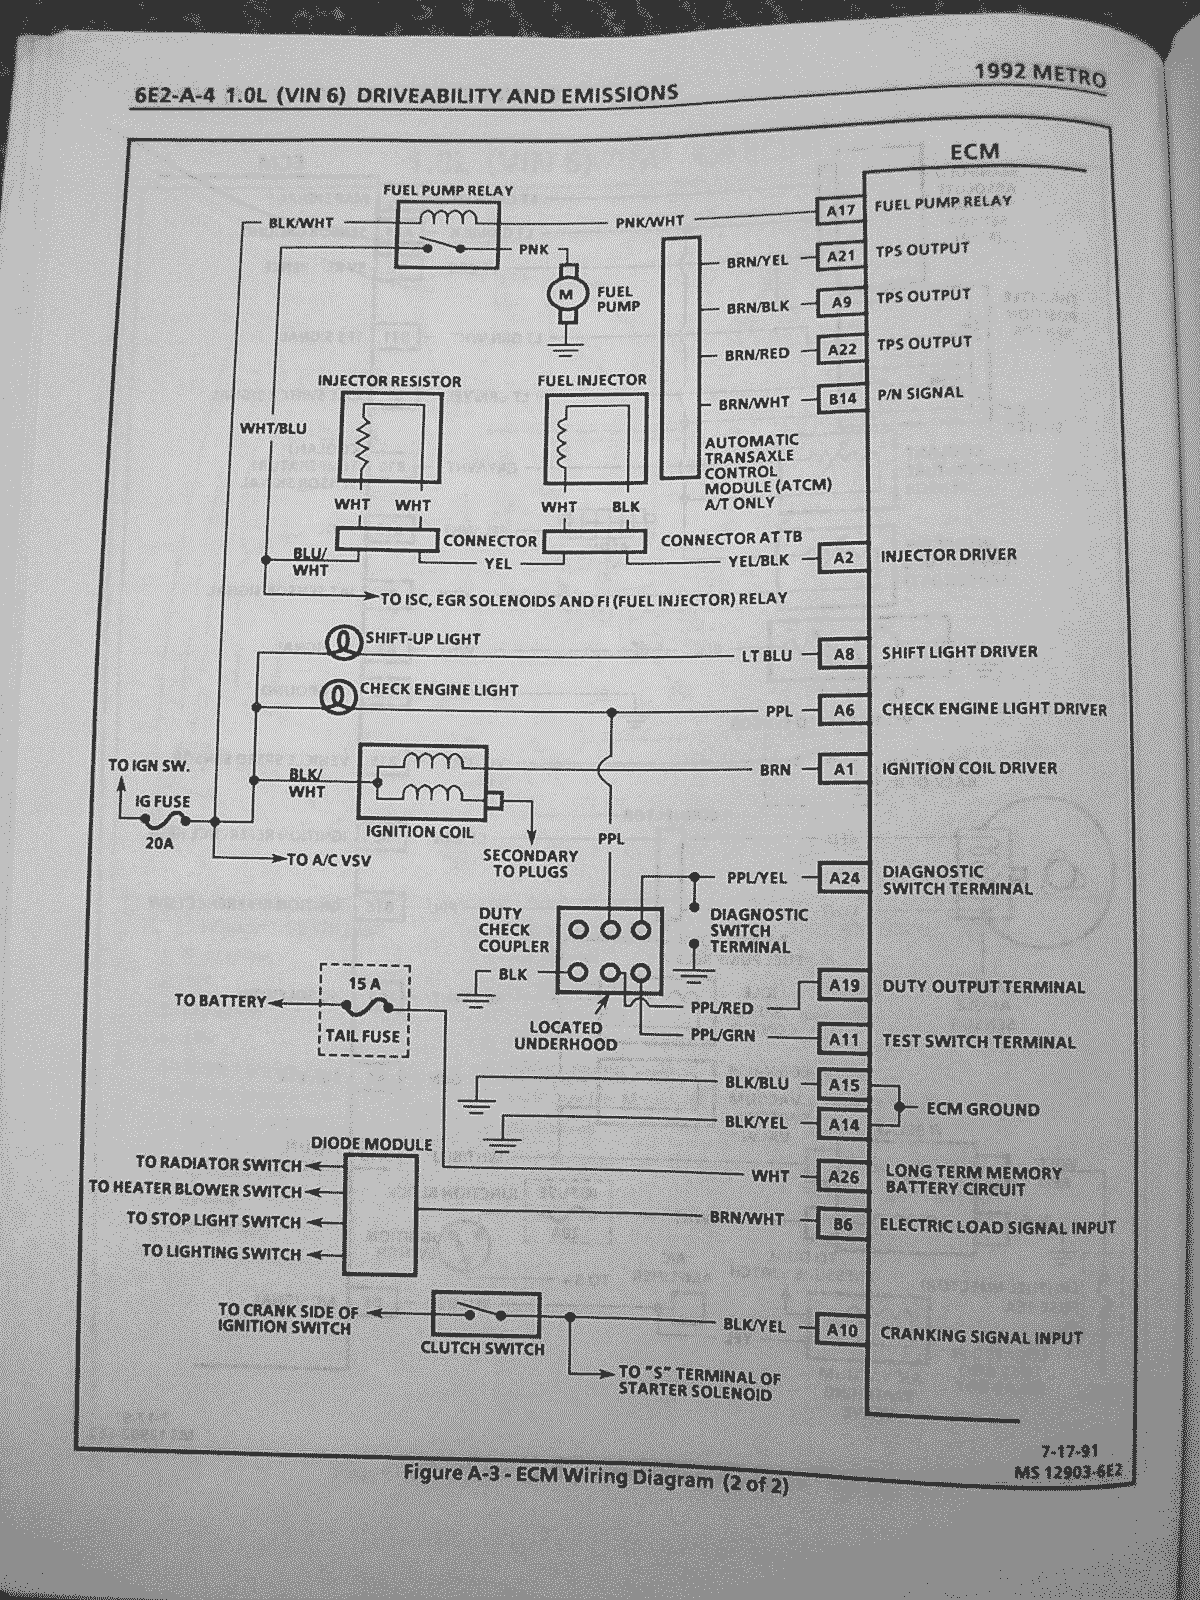 6e2 a 4 geo metro and suzuki swift wiring diagrams metroxfi com fuse boxes 1996 geo metro at honlapkeszites.co